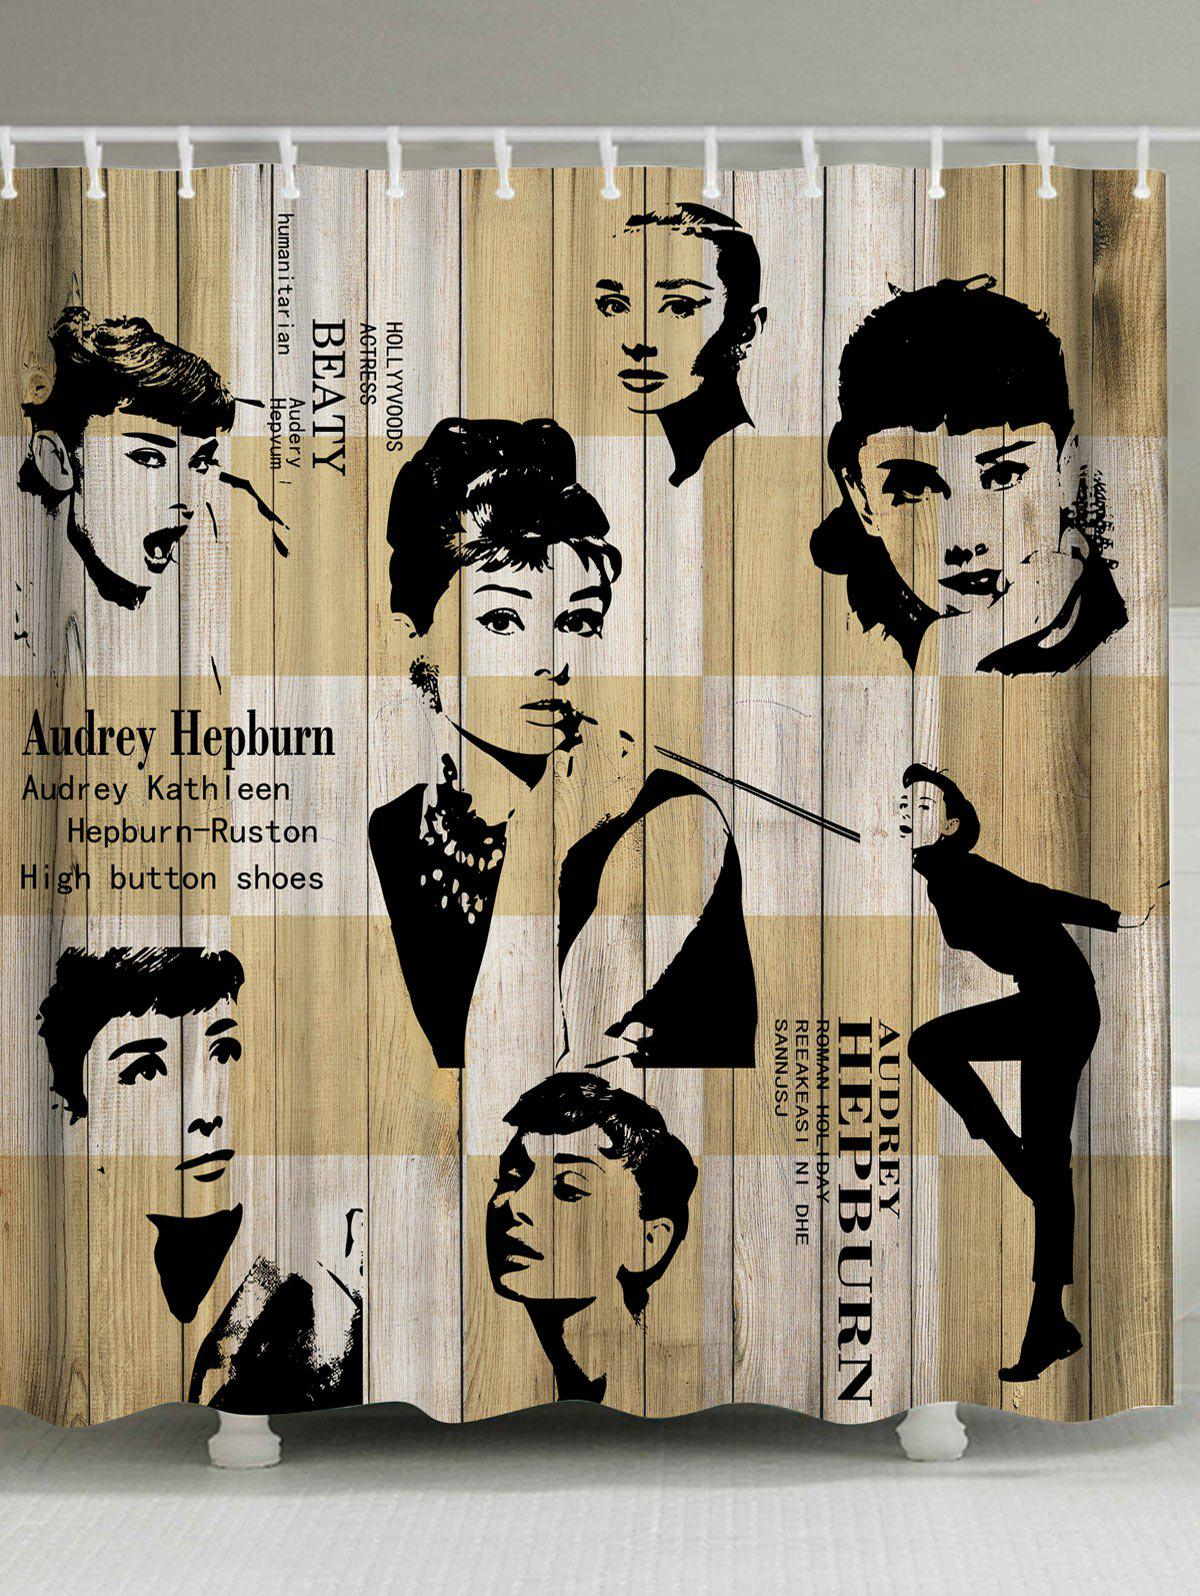 Waterproof Fabric Audrey Hepburn Shower Curtain new and original keyboard win8 for alw m17x r4 m18x r1 dpn 0gmcd3 us